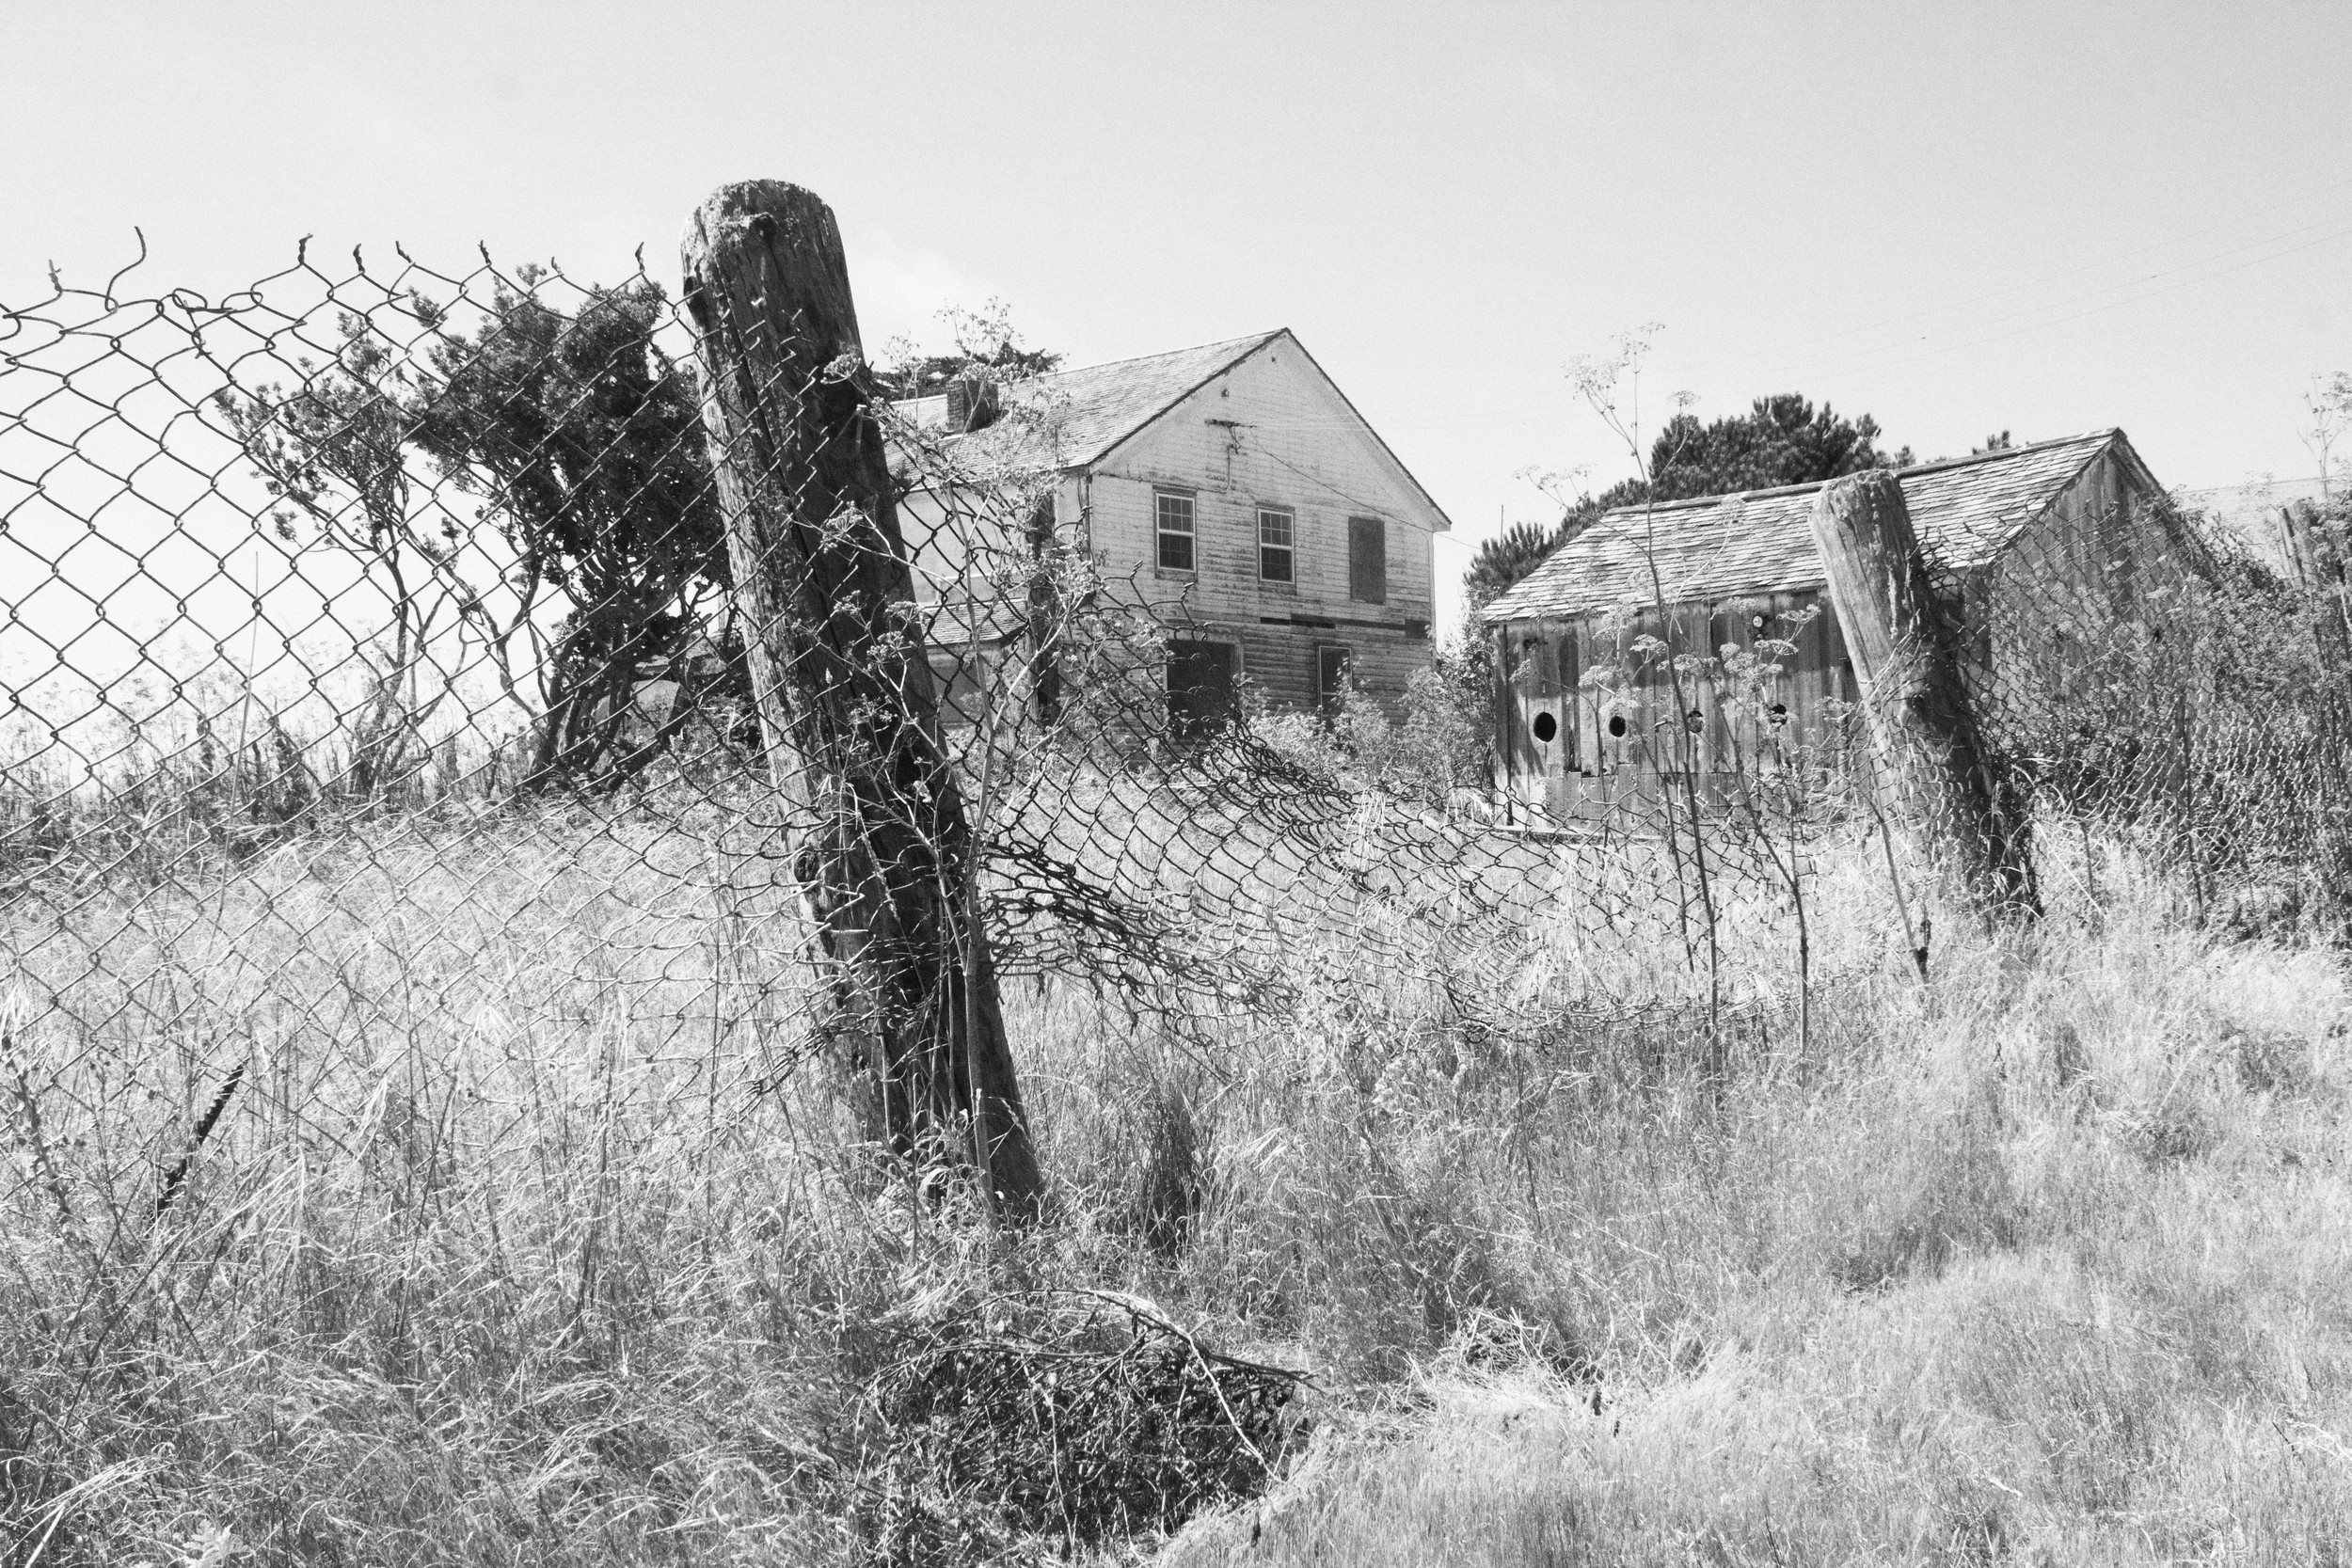 farm at Point Reyes National Seashore, August 2016